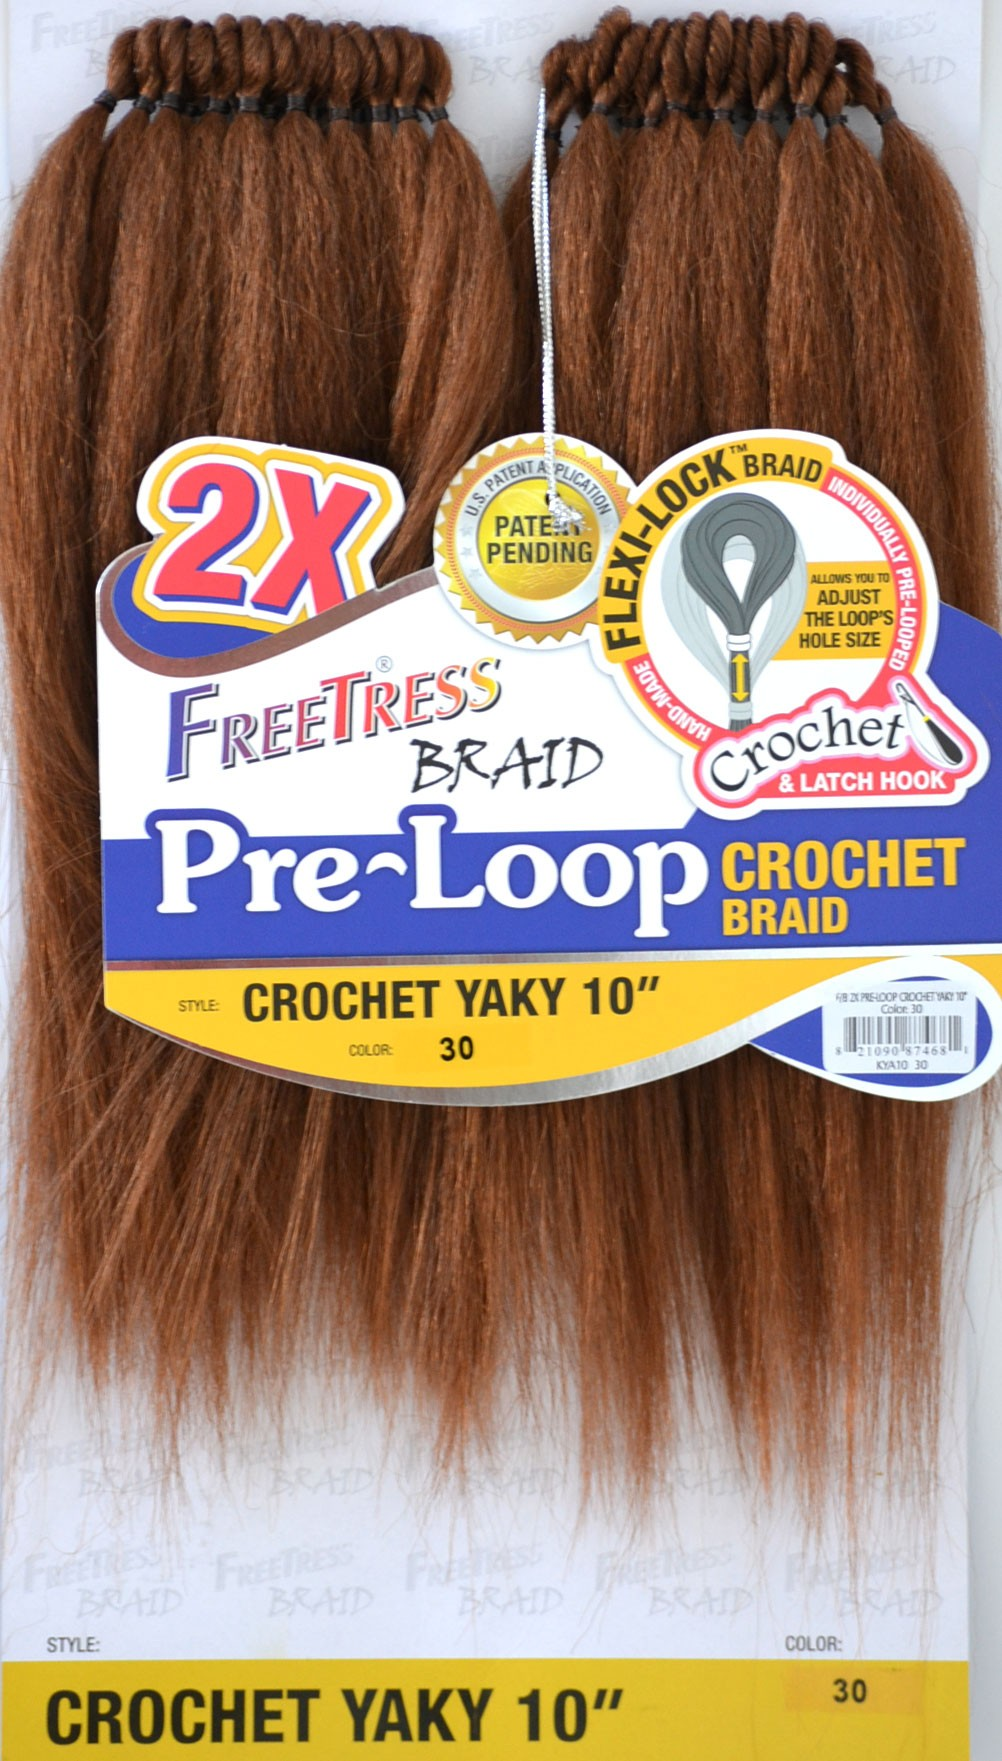 Crochet Hair Pre Loop : ... > Hair Care & Styling > Hair Extensions & Wigs > Hair Ex...